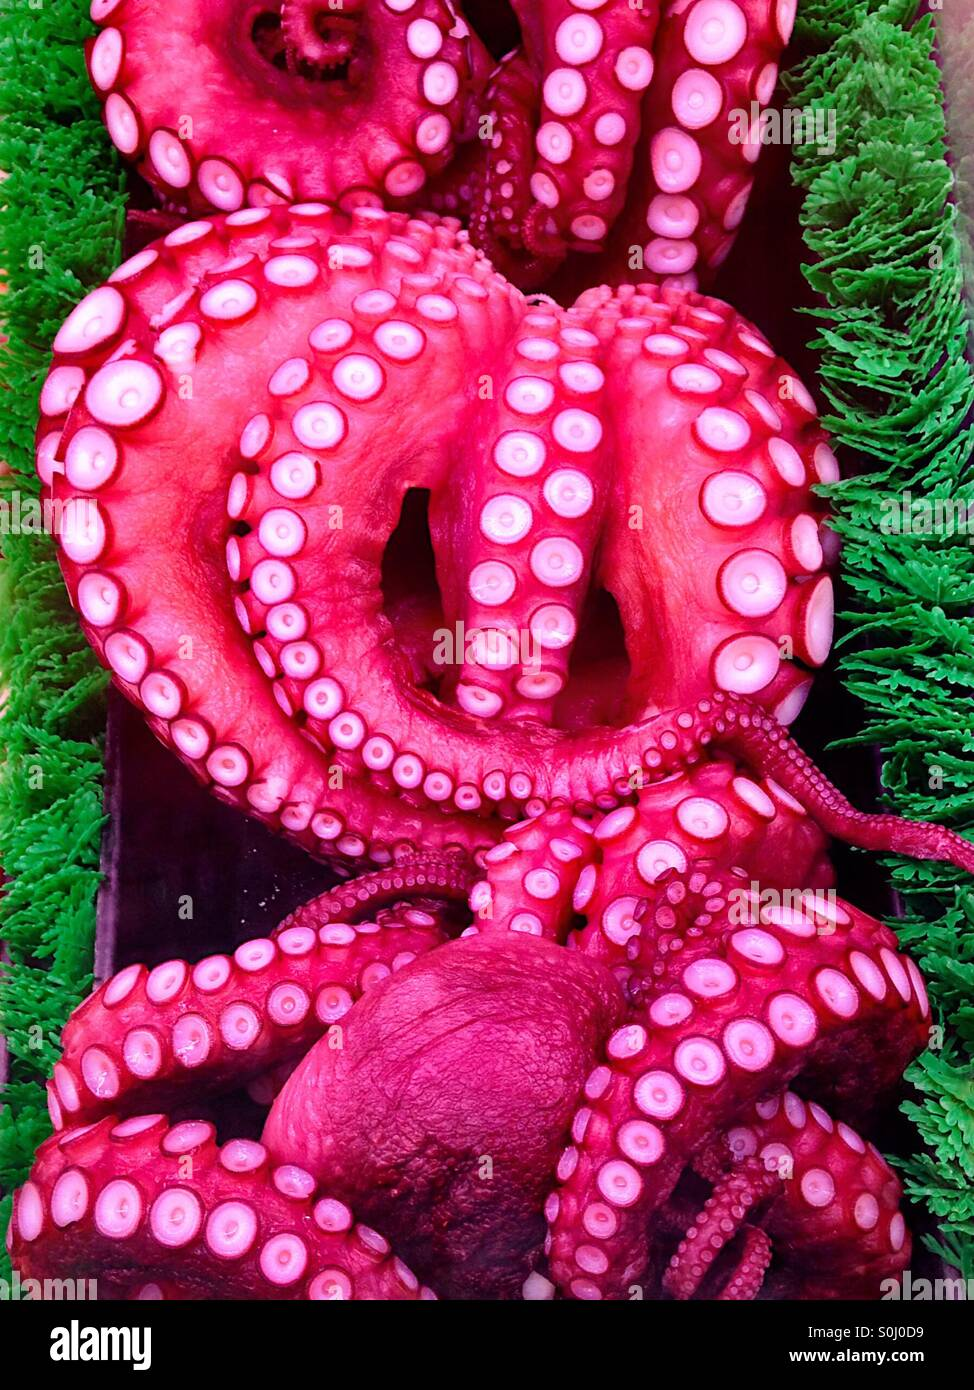 Fresh octopus in a market display - Stock Image